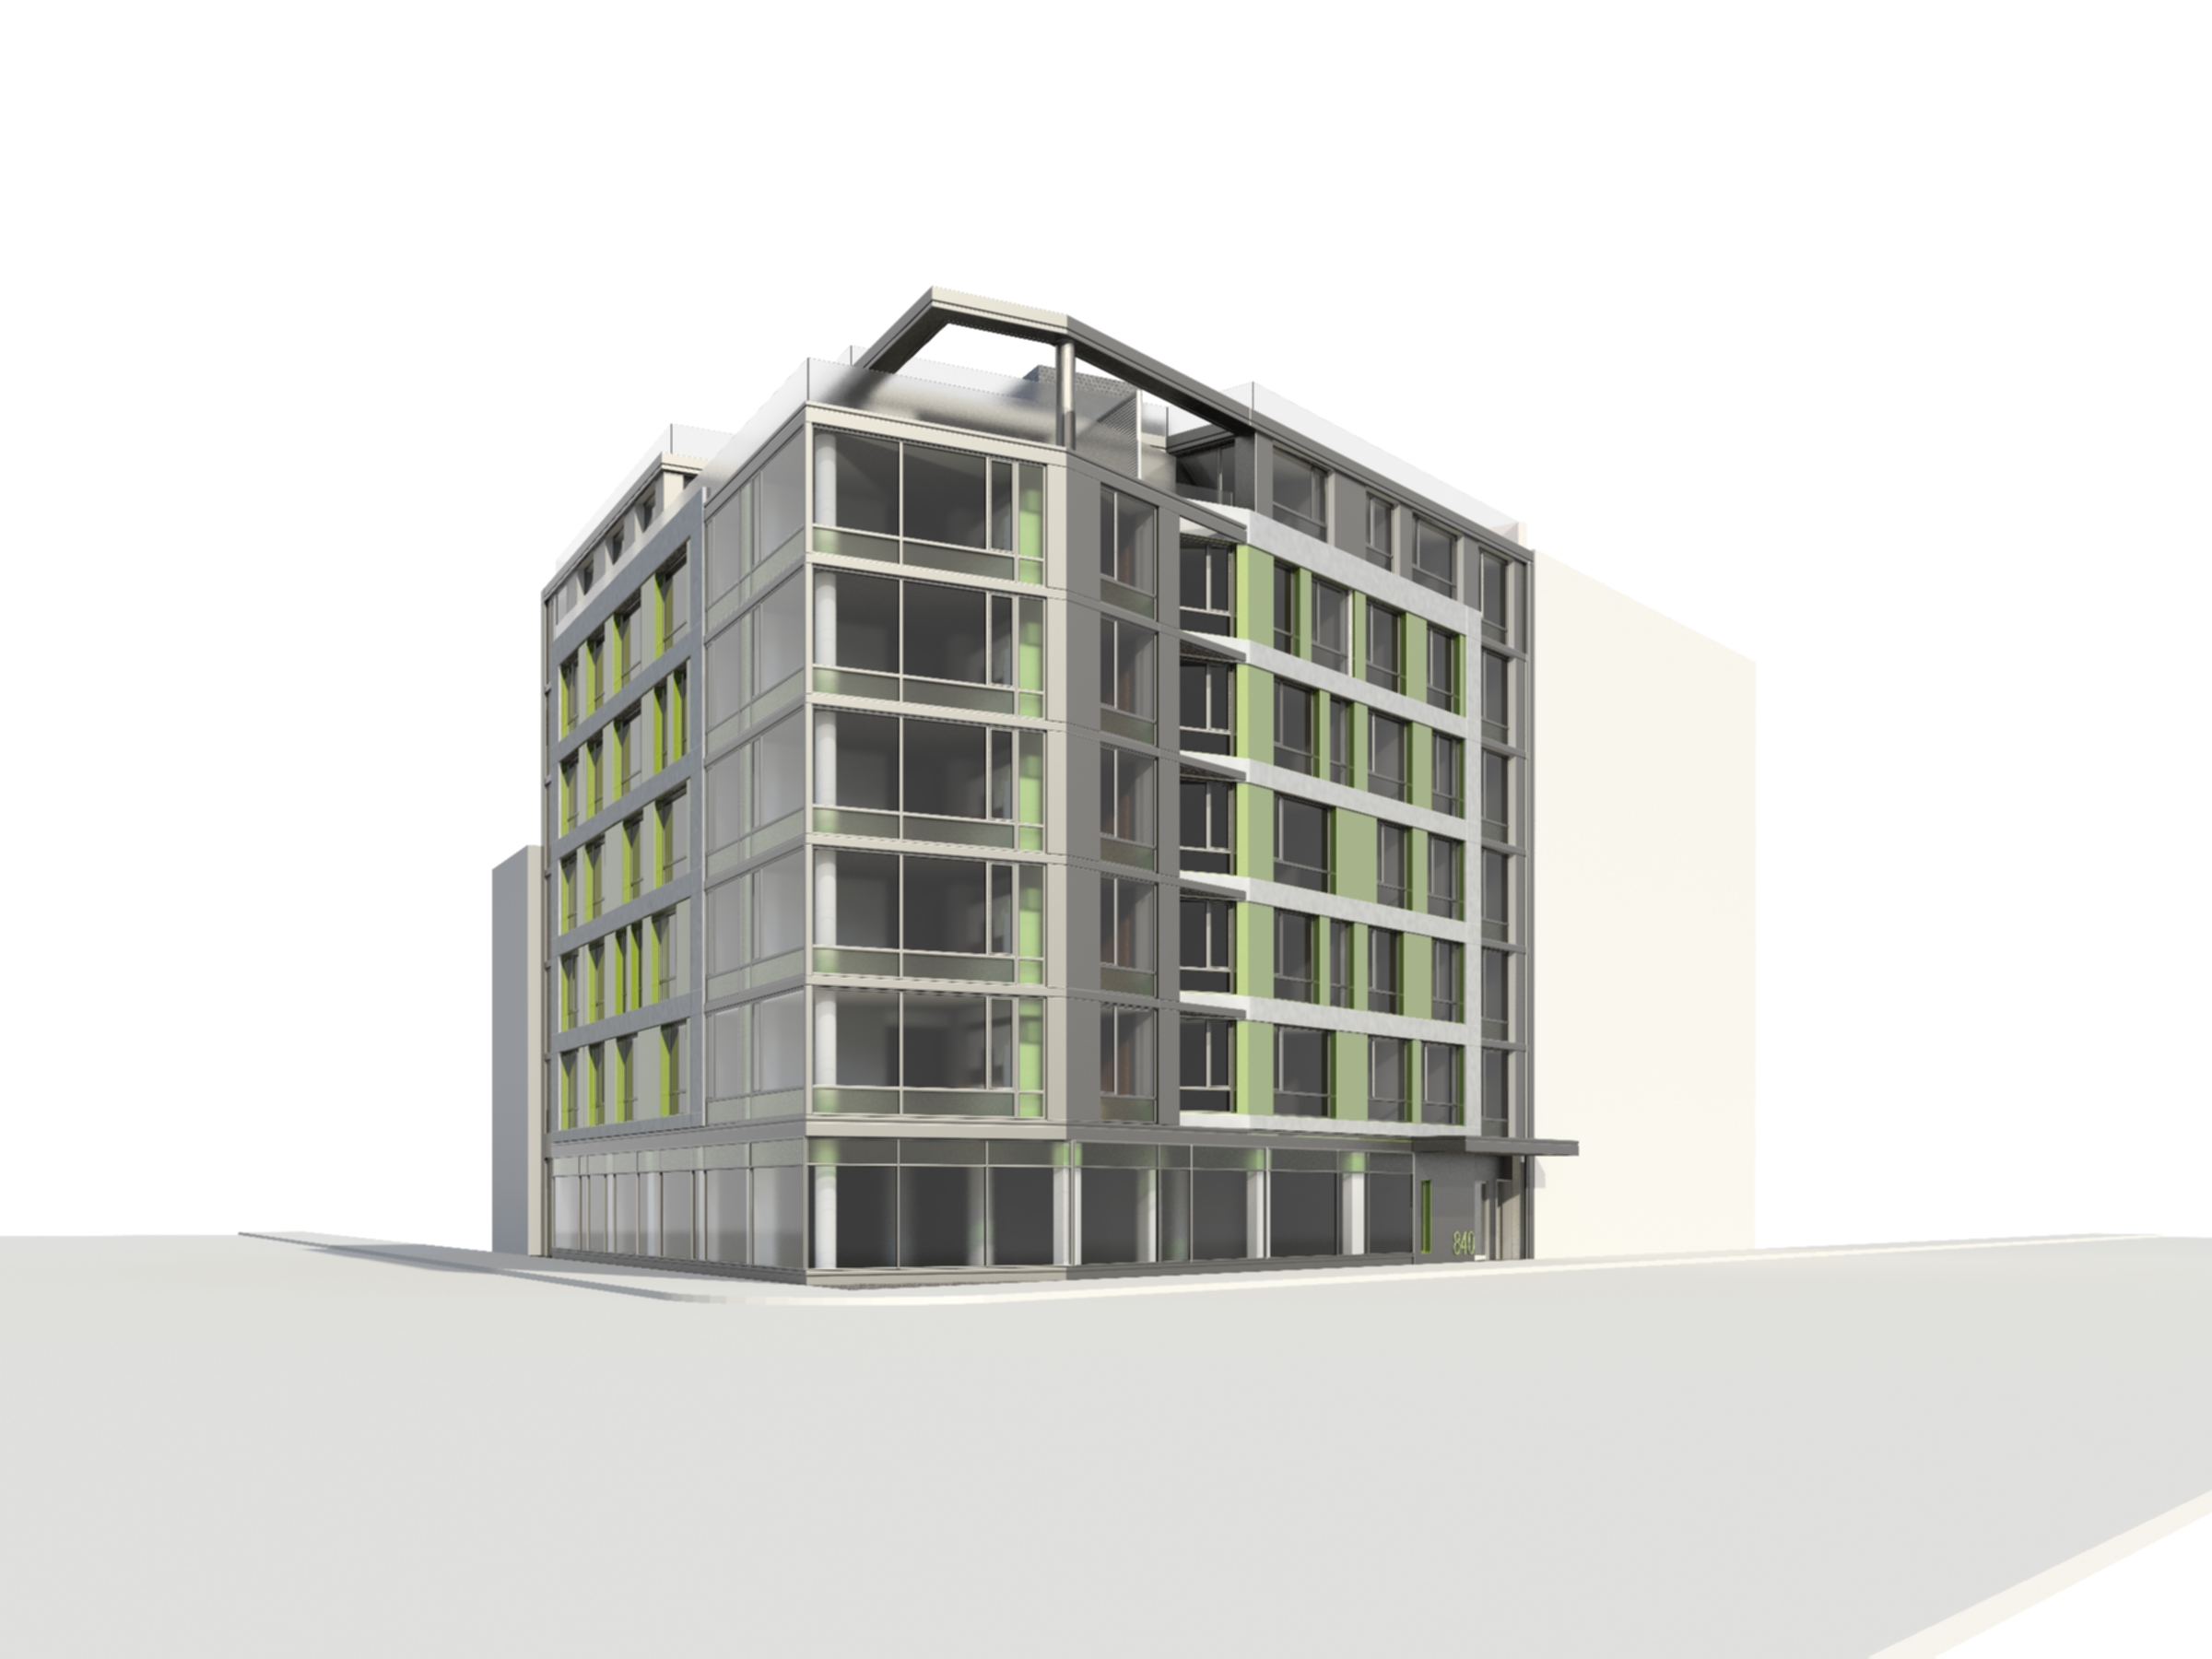 840 Fulton Street, rendering by KBA Architects